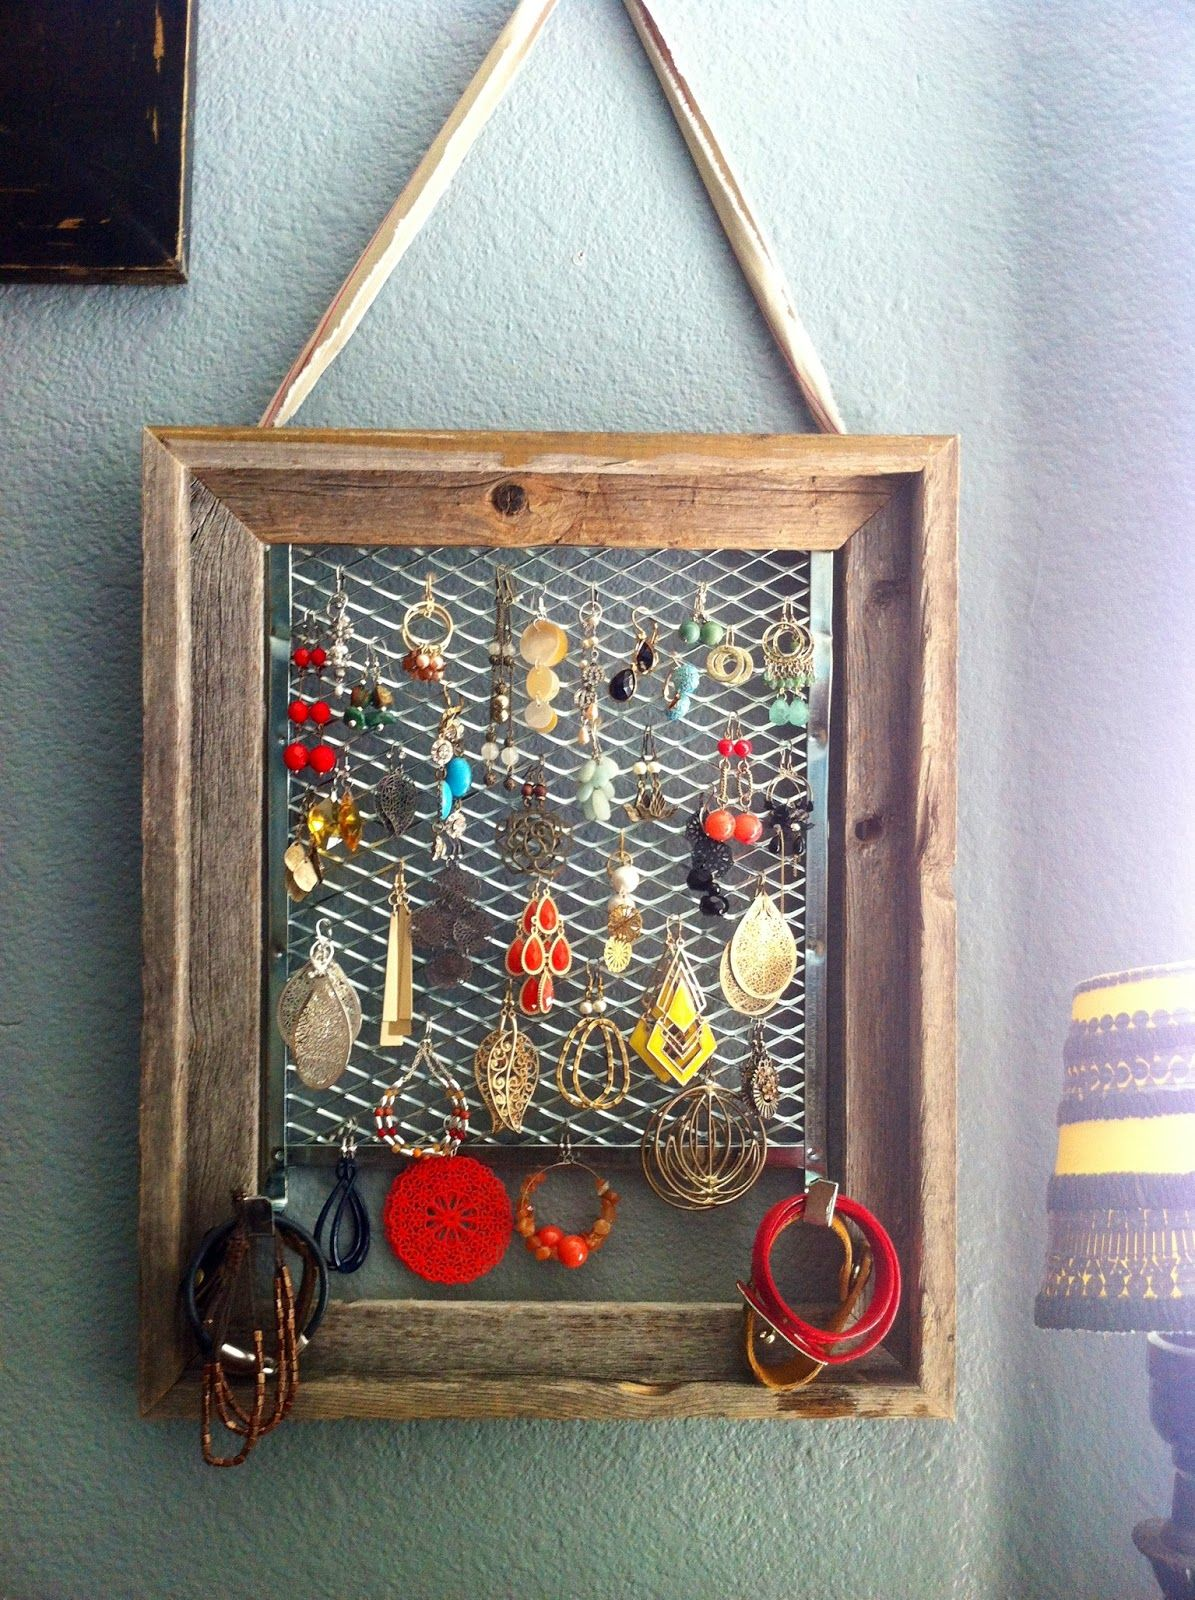 Diy jewelry hanger using a frame from hobby lobby paint tray from diy jewelry hanger using a frame from hobby lobby paint tray from lowes hot jeuxipadfo Image collections